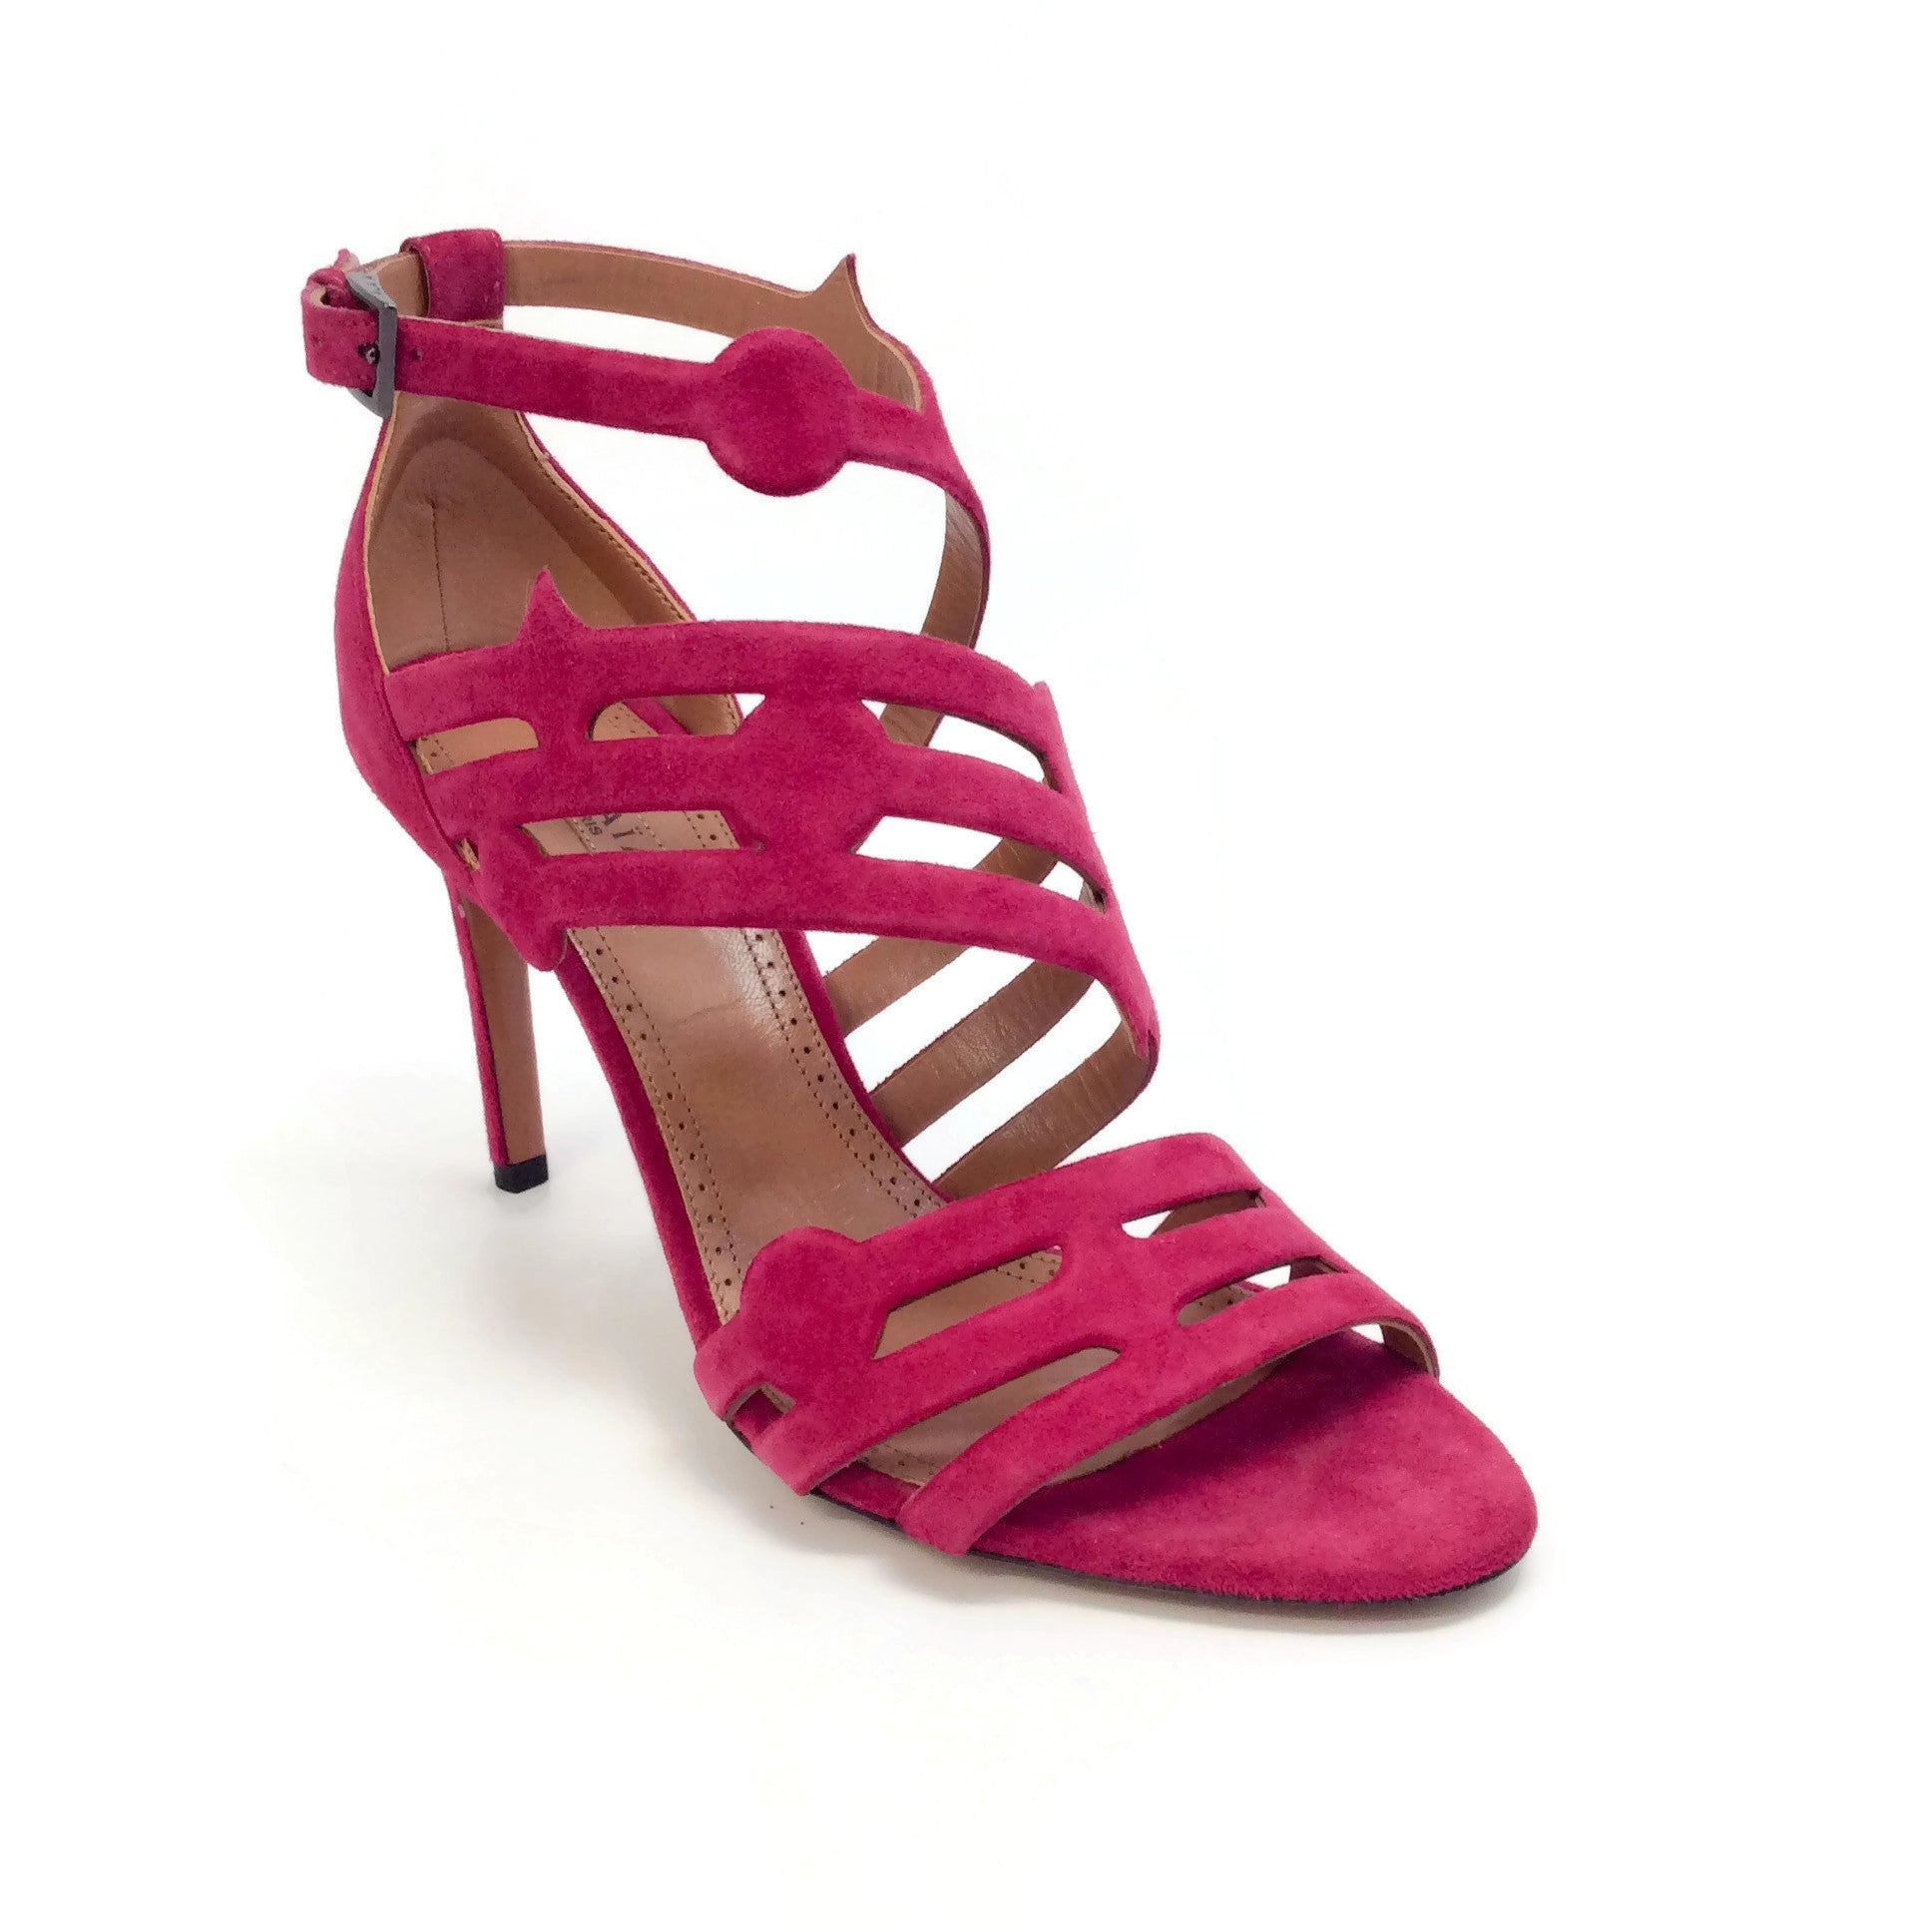 ALAÏA Raspberry Cage Sandals